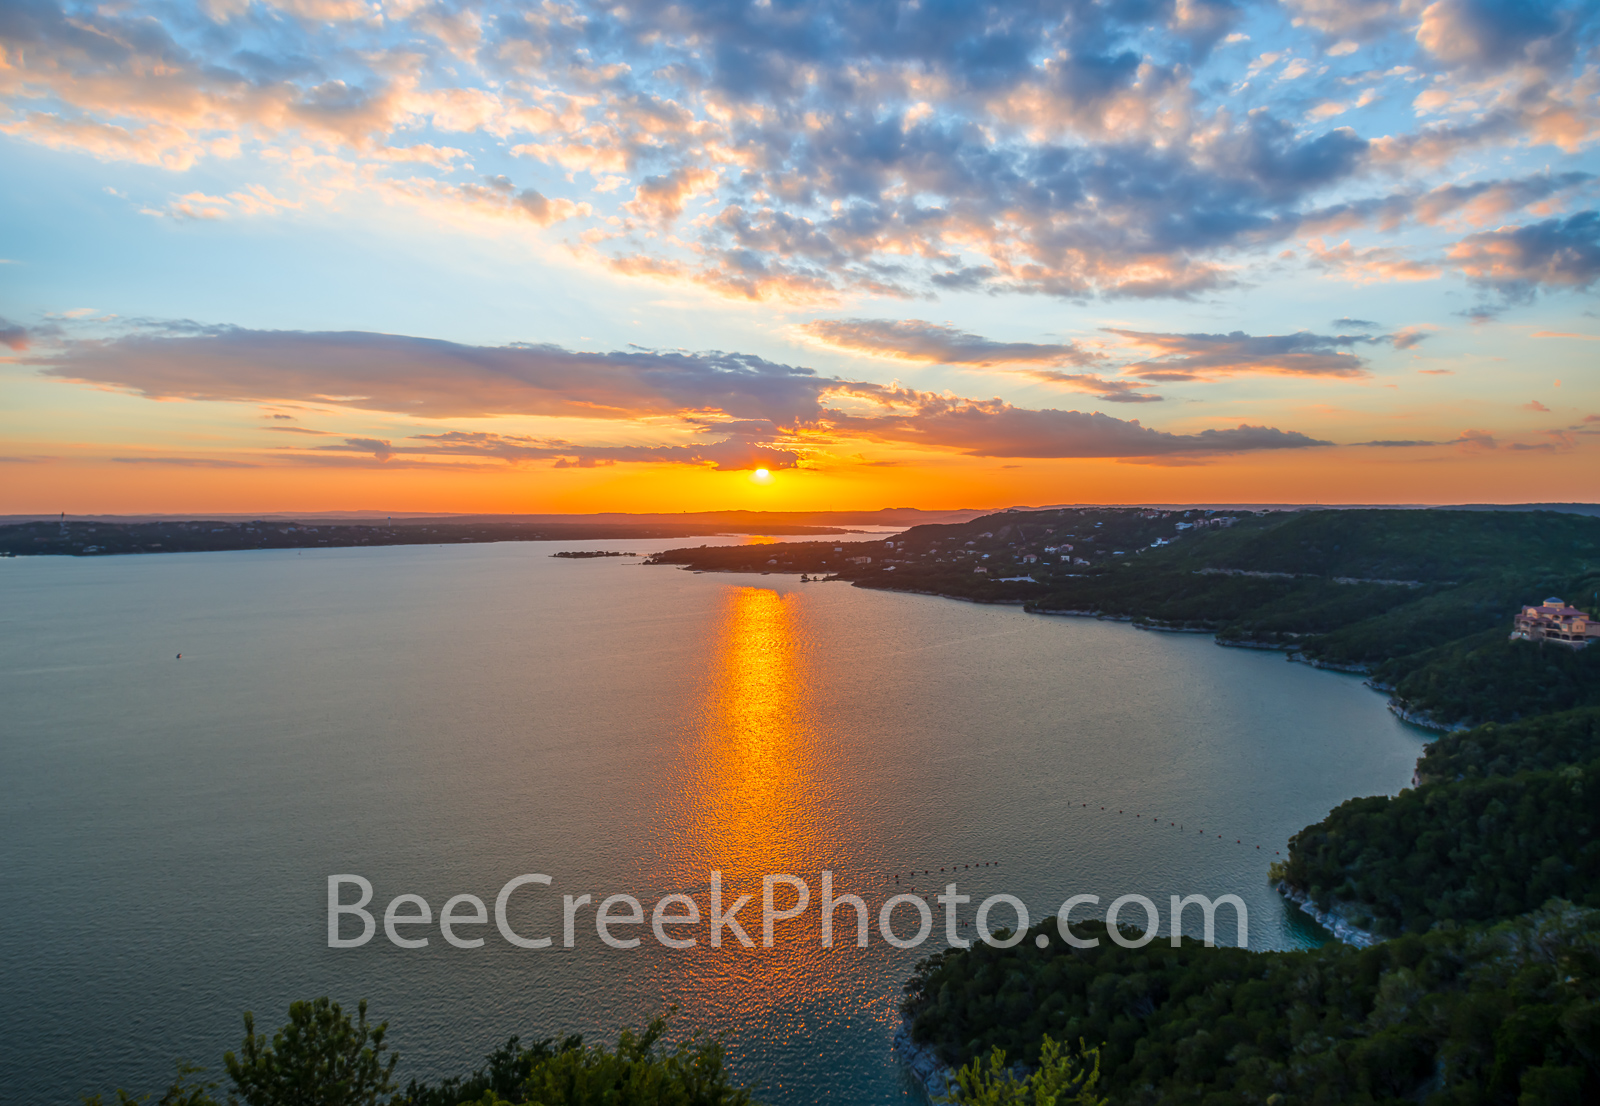 Lake Travis sunset, scenic, lake travis landscape, overlook, Lake Travis scenery, Oasis, Oasis City, Lake Travis, images of Lake Travis, photos of Lake Travis, picture of Lake Travis, photos from the , photo